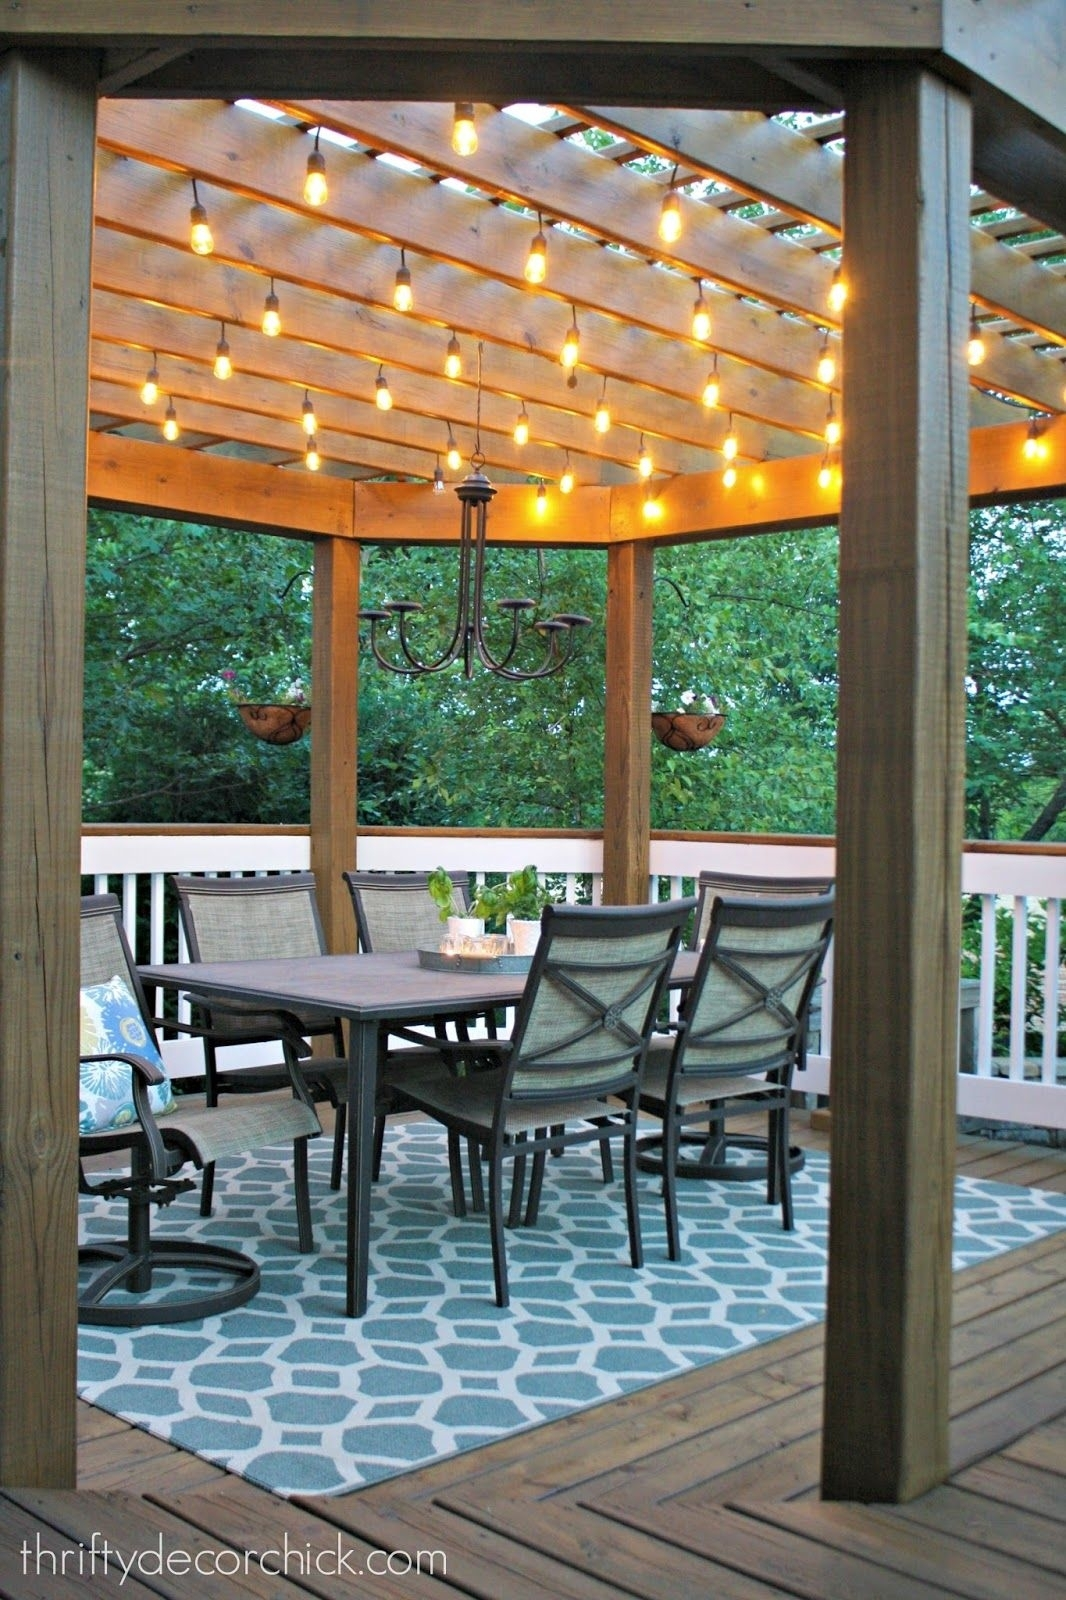 Our Beautiful Outdoor Dining Room | Diy New Home Remodeling for Outdoor Dining Lanterns (Image 10 of 20)